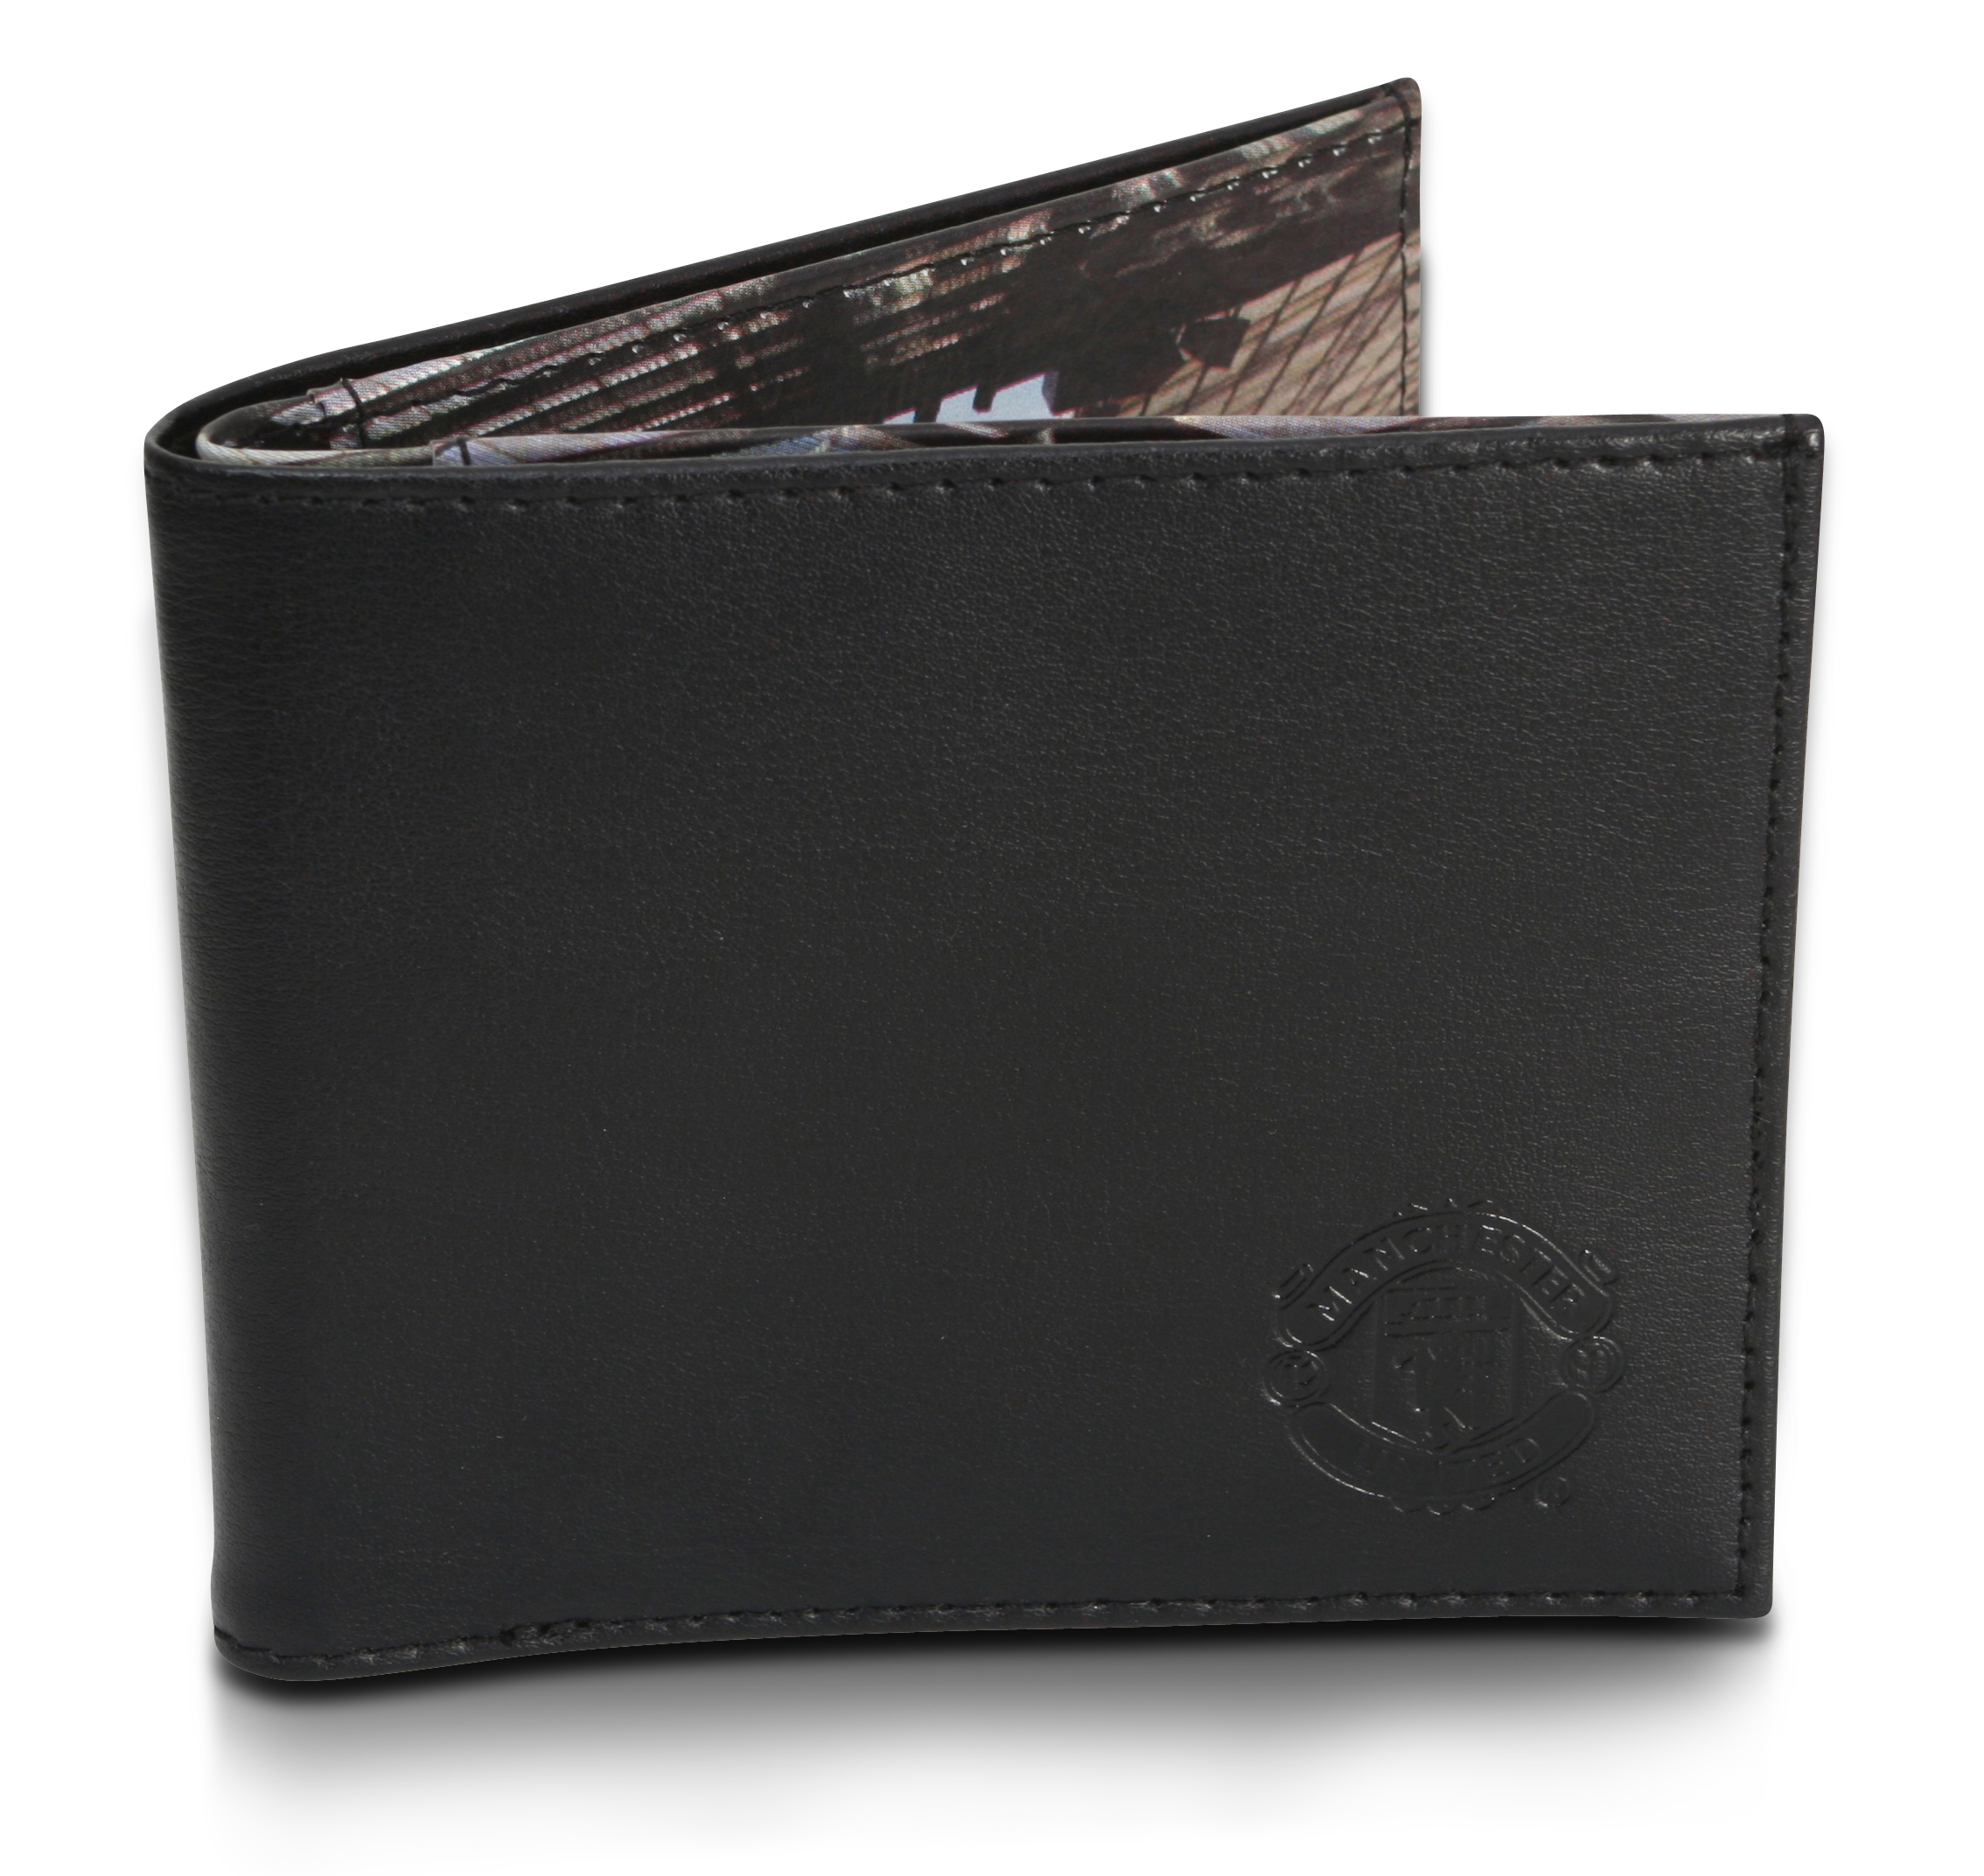 Manchester United Stadium Leather Wallet - Black